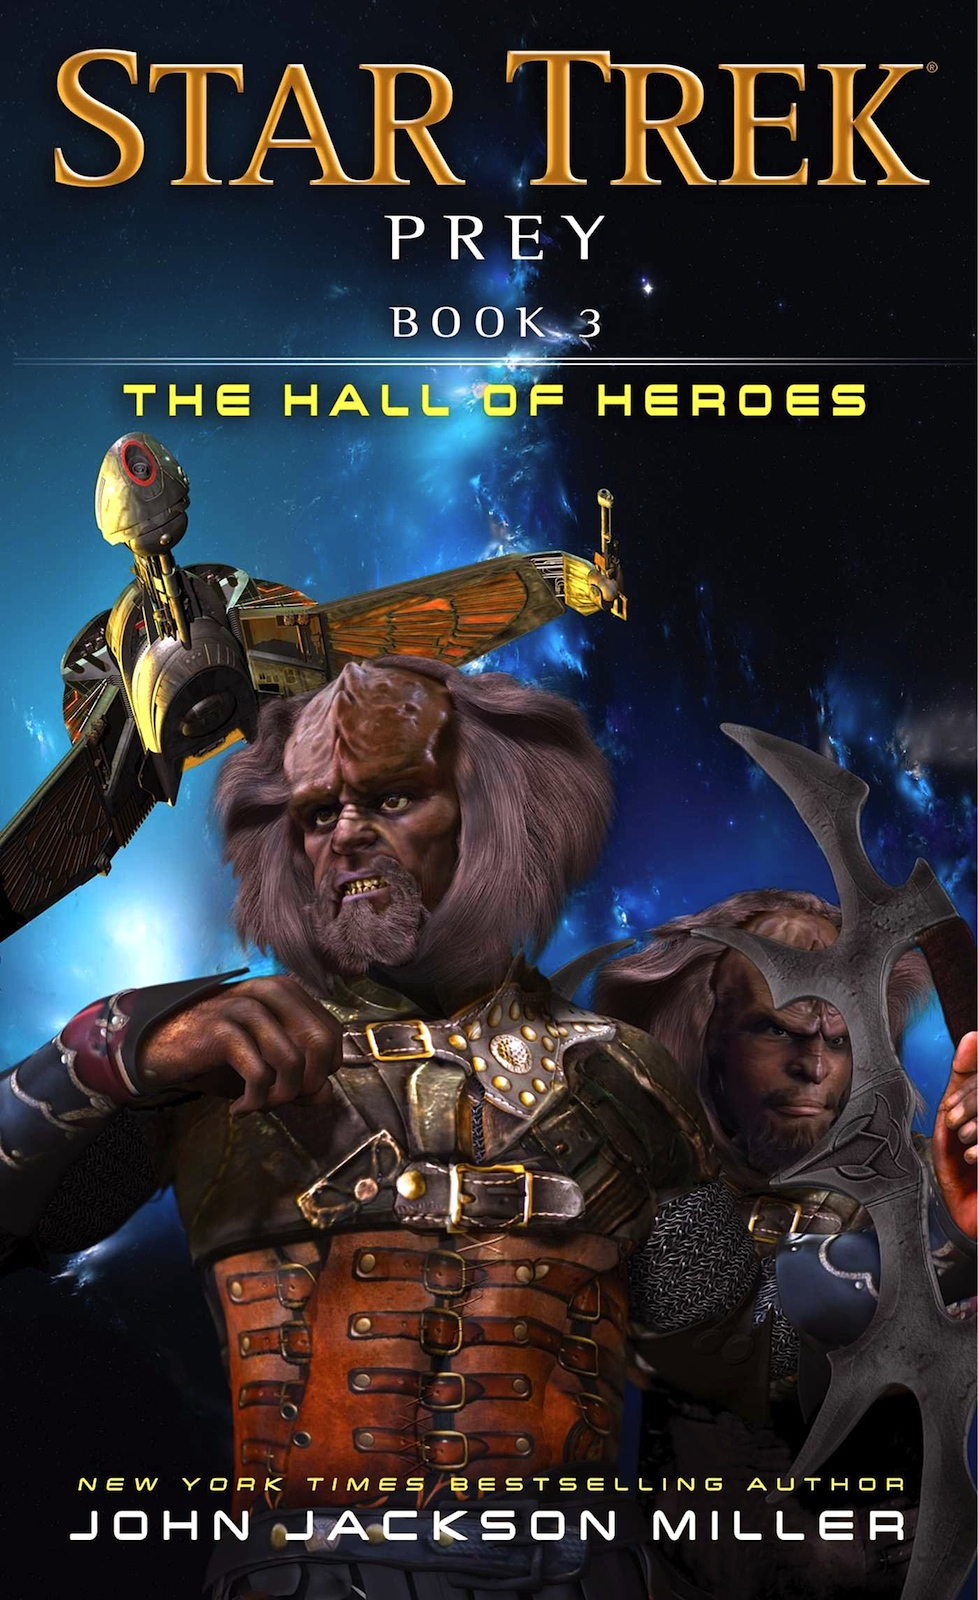 The Hall of Heroes